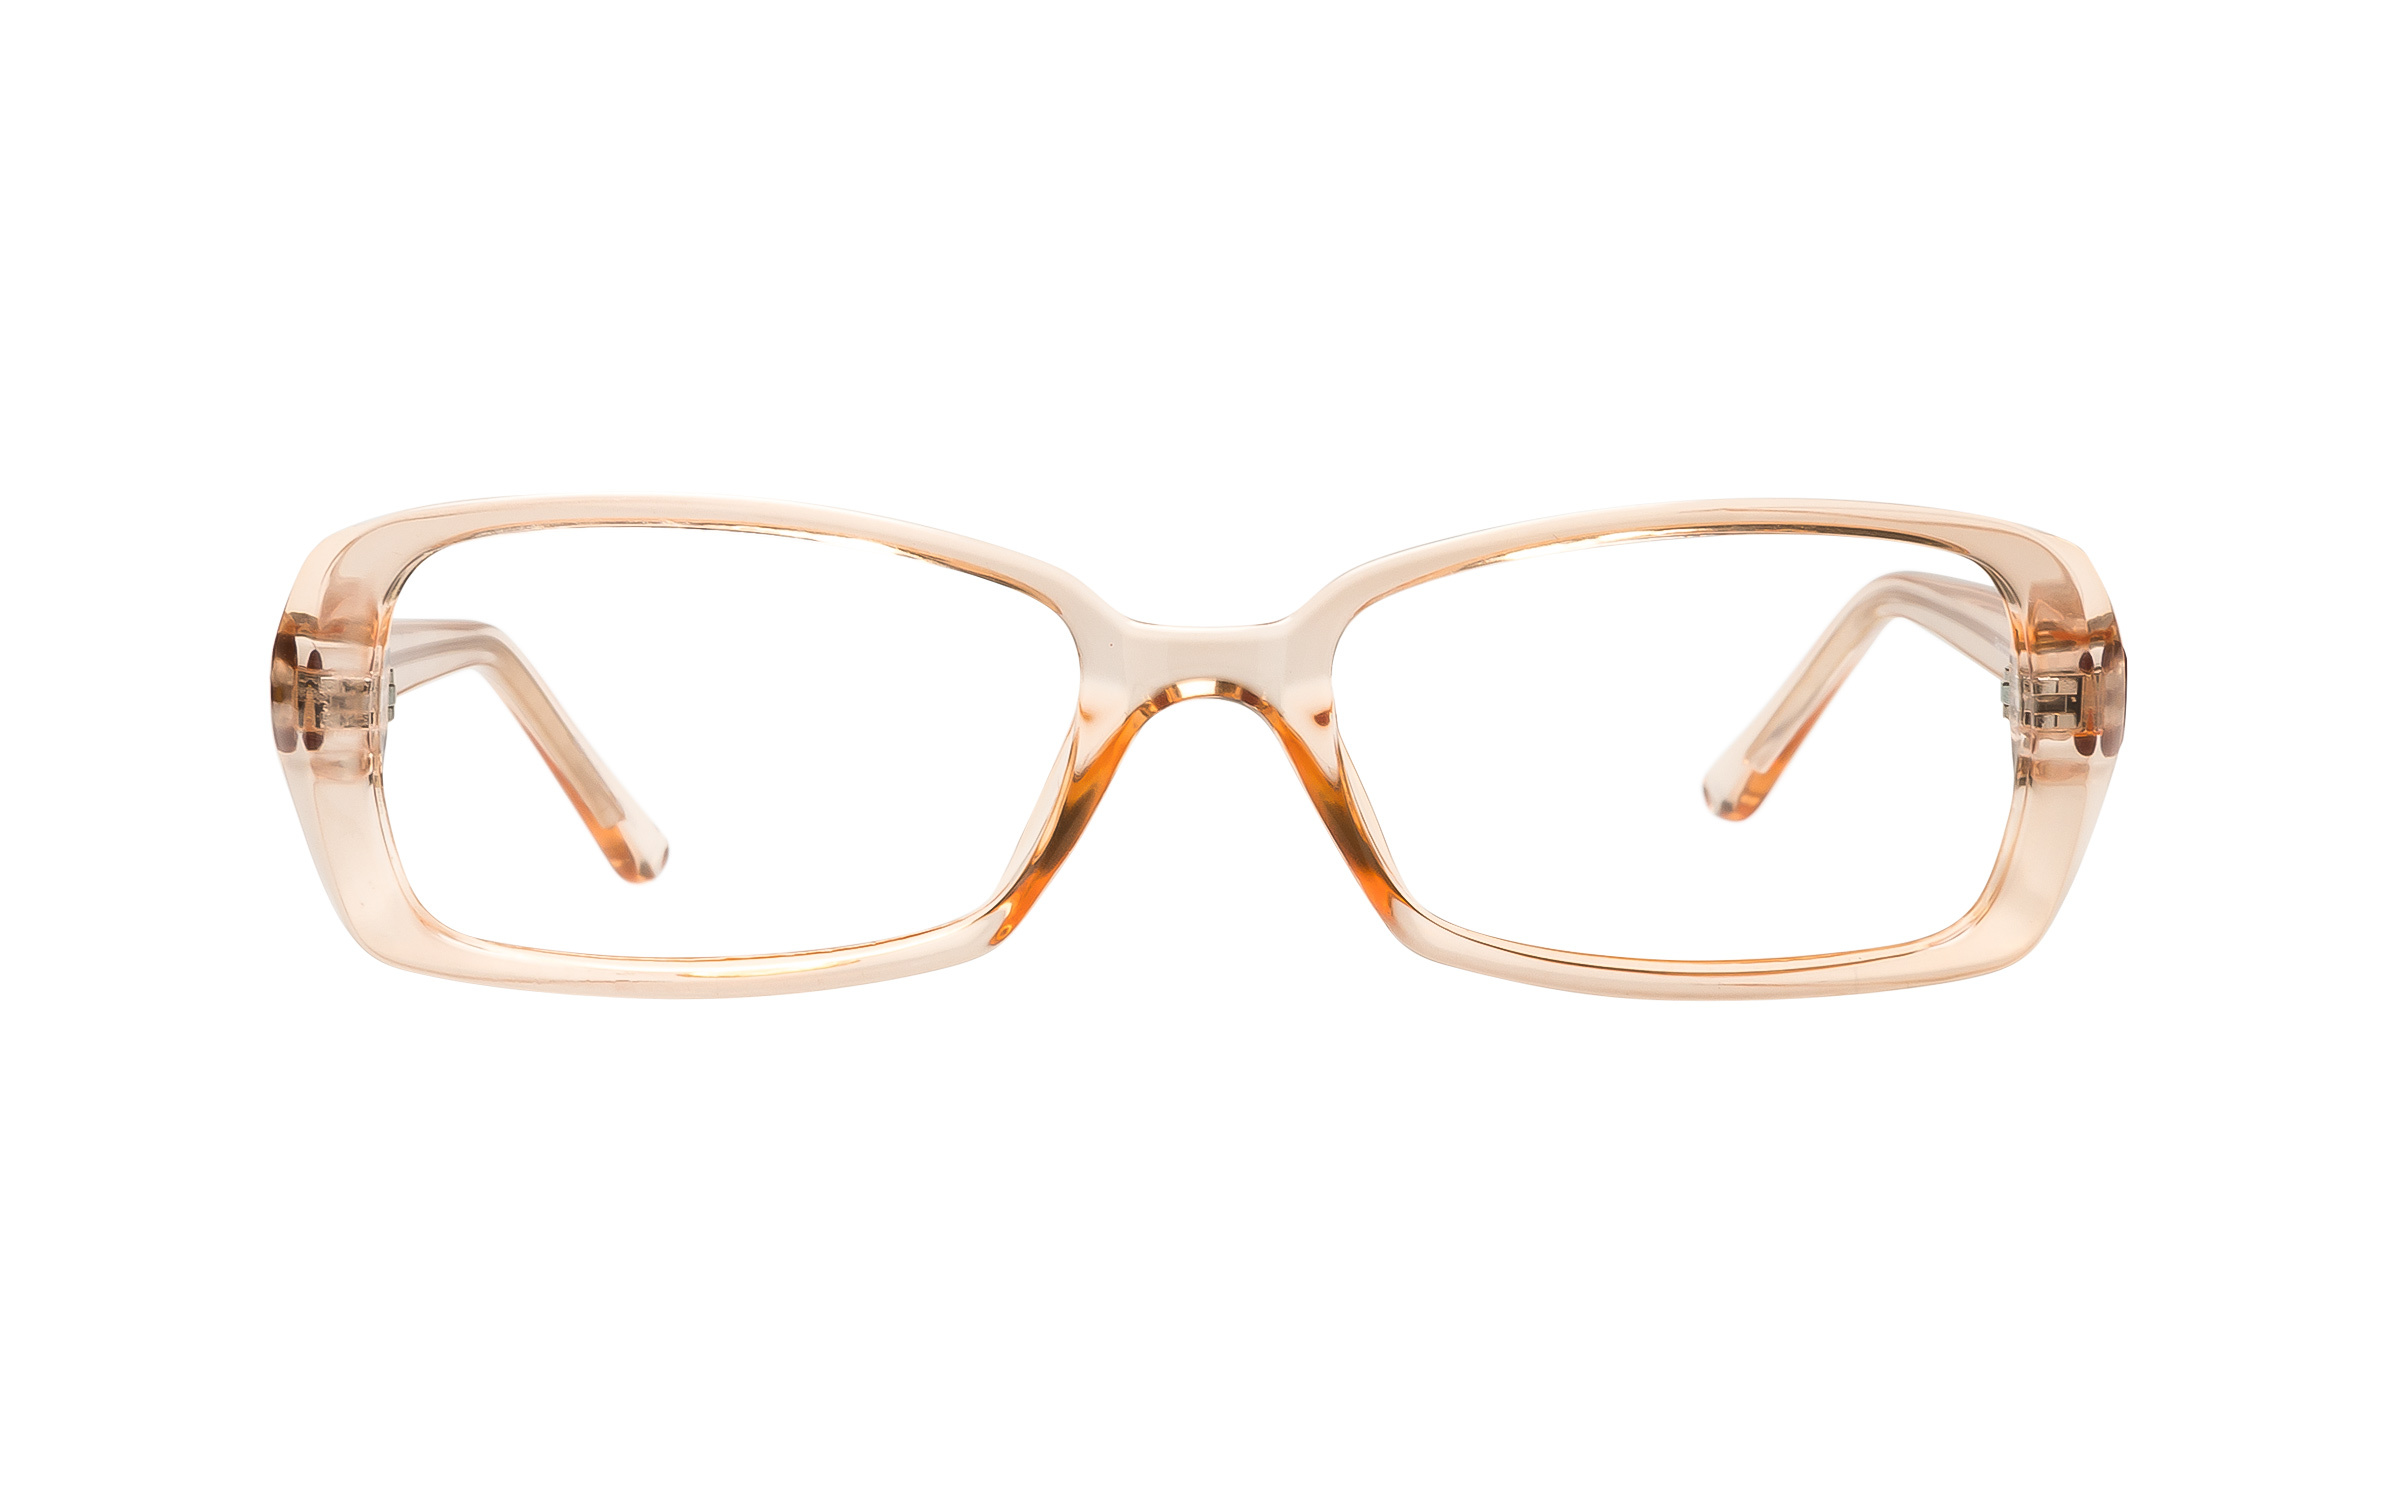 Clearly Basics Penticton (51) Eyeglasses and Frame in Nude - Online